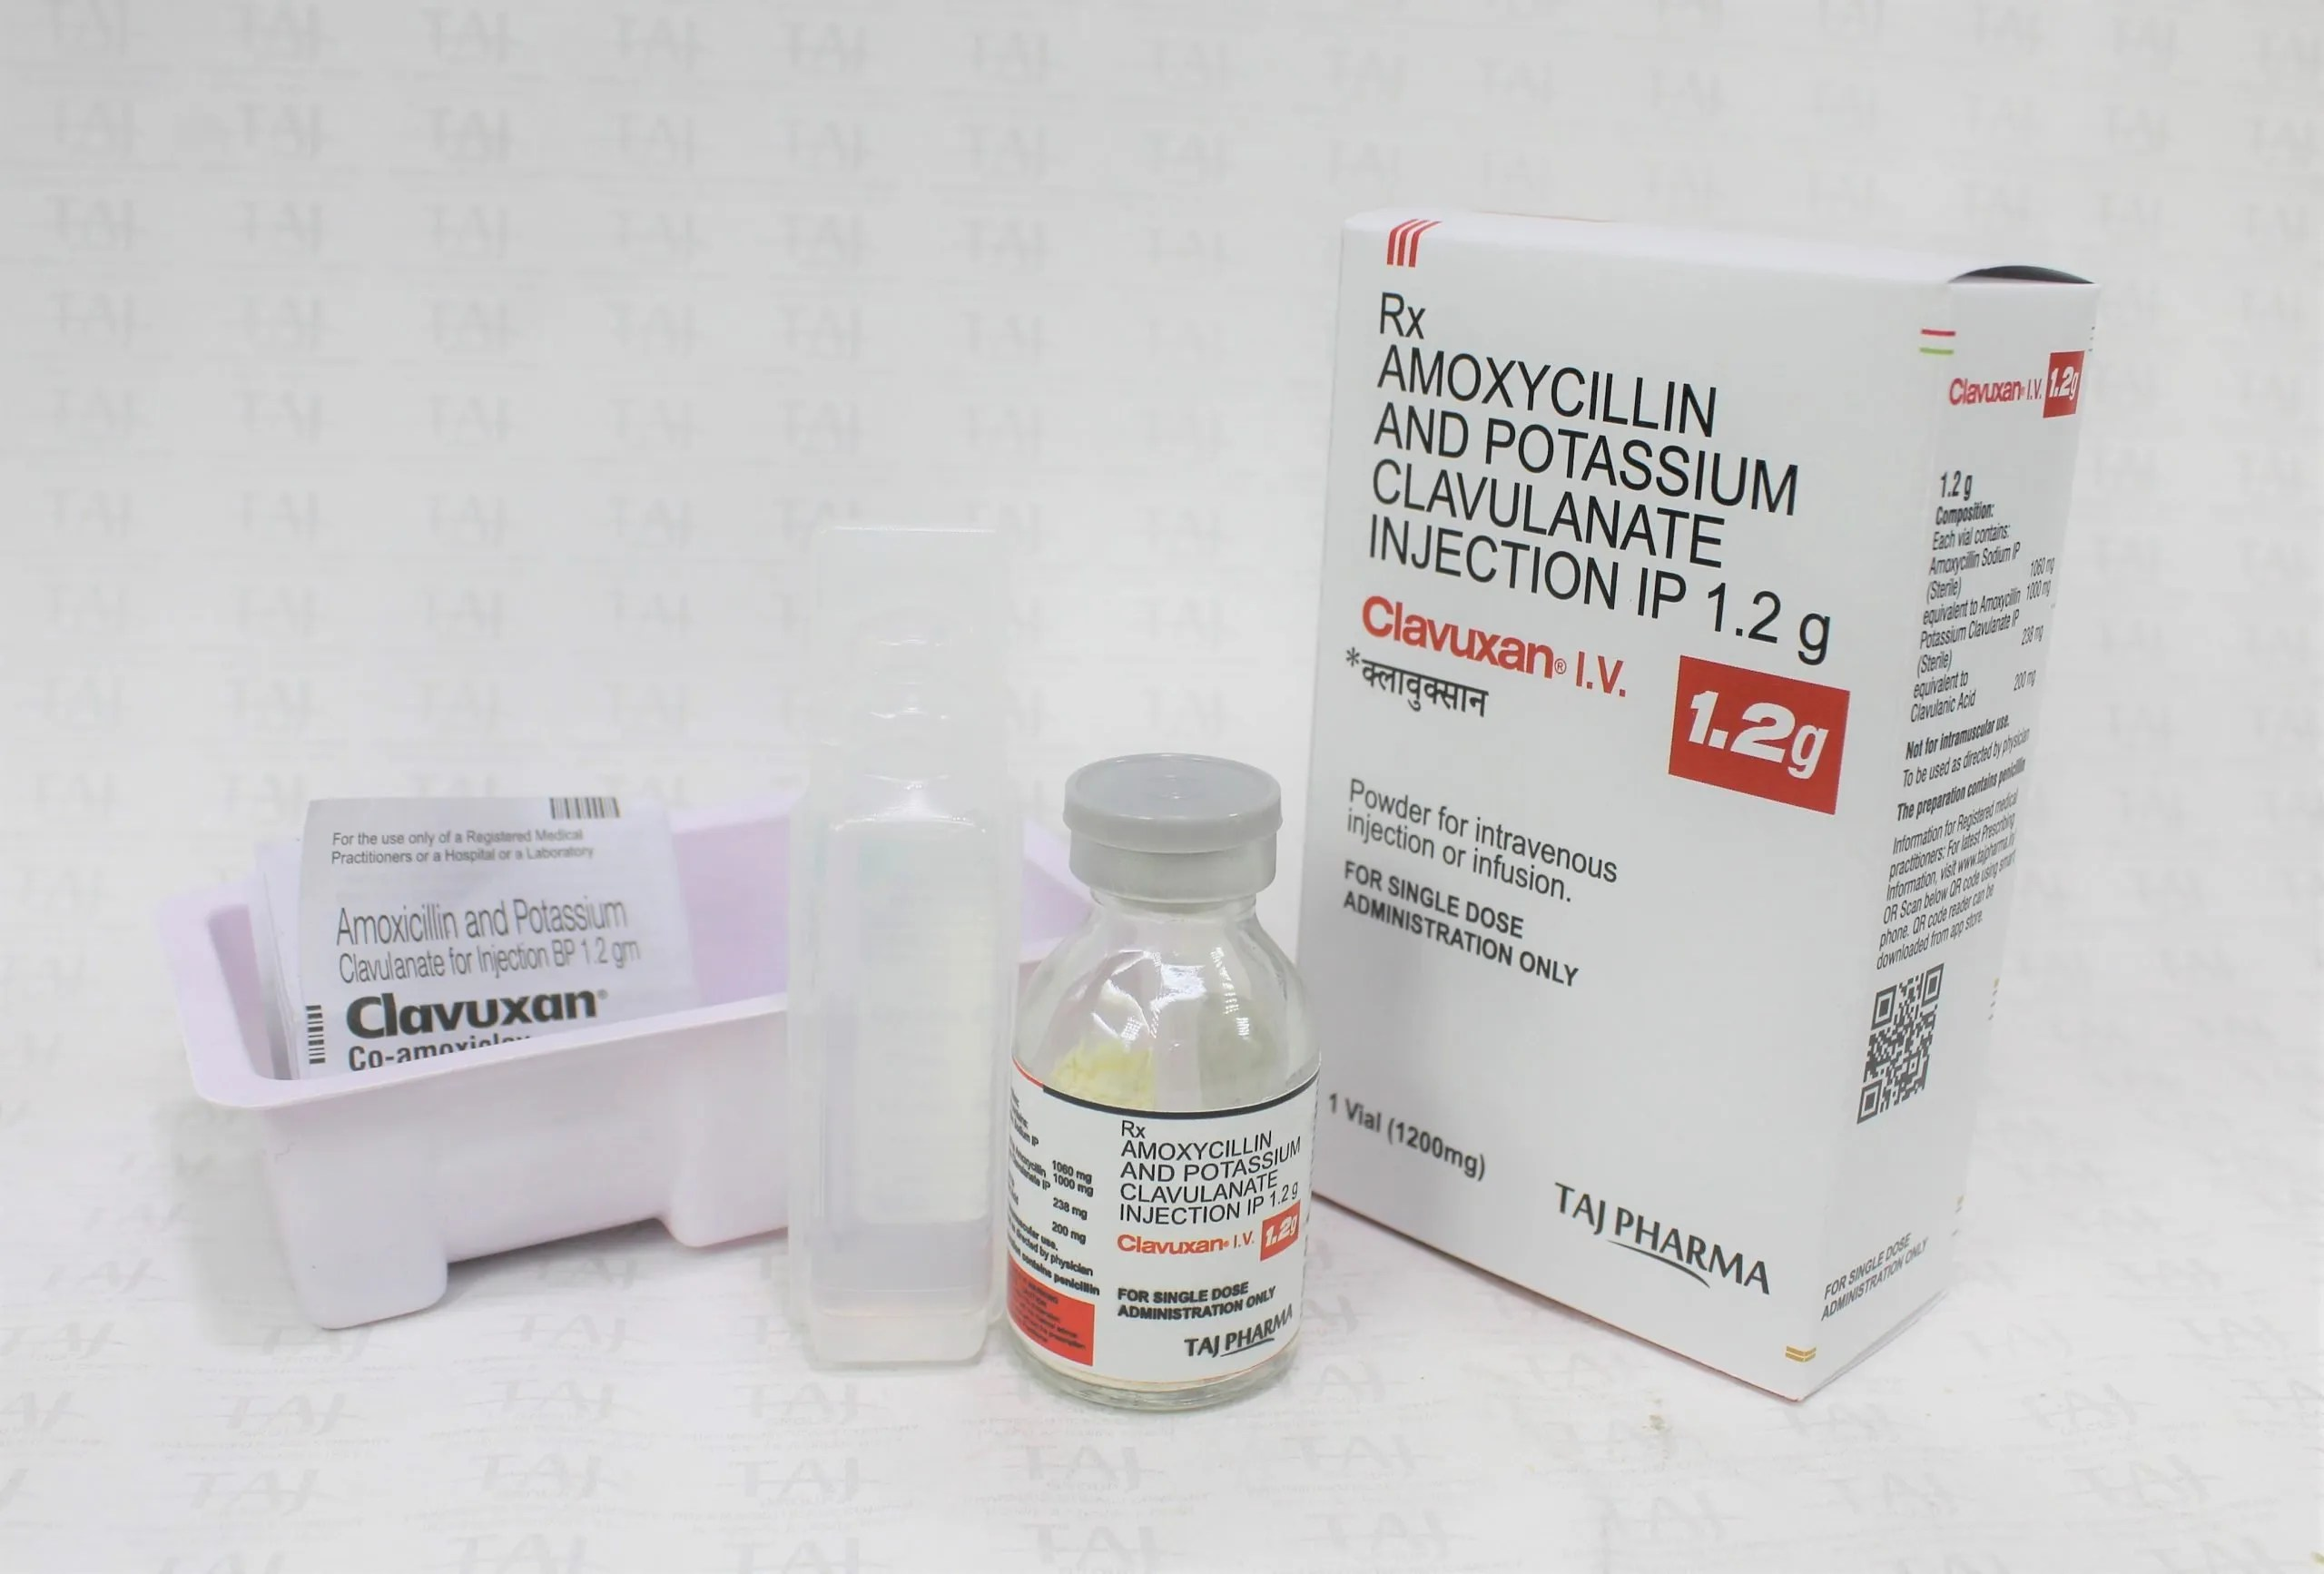 Amoxicillin and Potassium Clavulanate Injection IP 1.2g (Clavuxan) Manufacturers, Suppliers & Exporters India – Taj Pharma {GMP Approved}